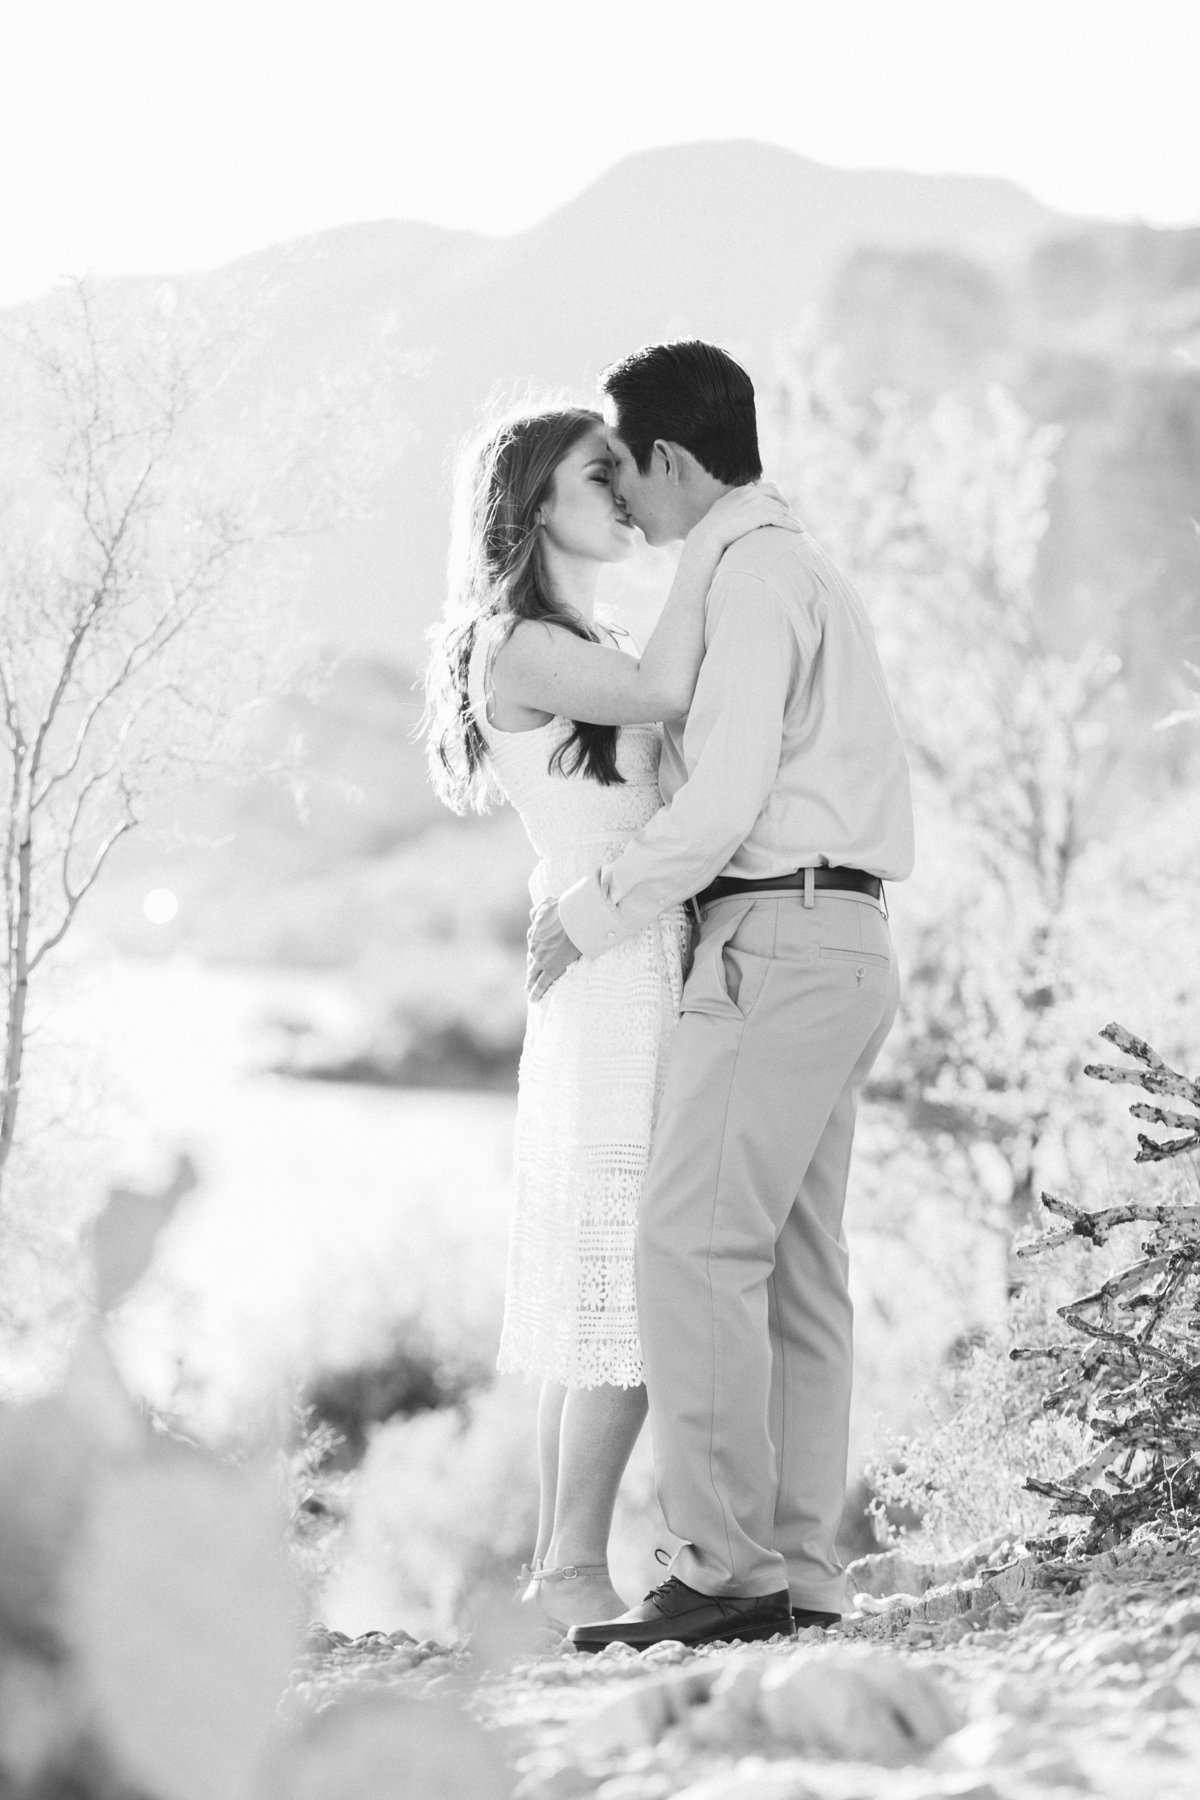 BarrientosEngagementWEBSITE-1